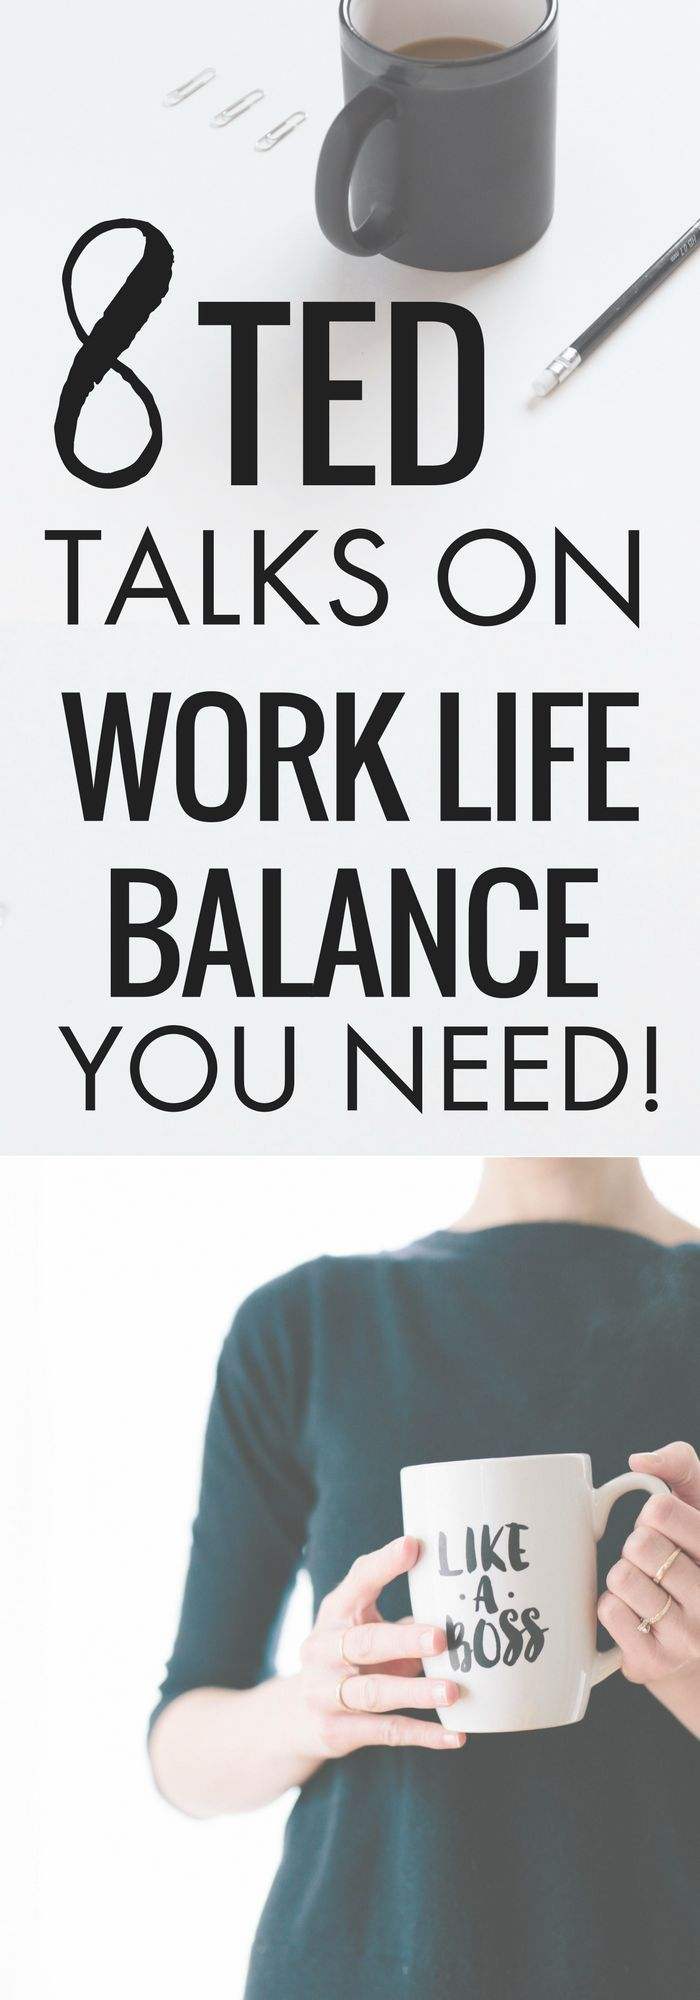 the effect of smartphones on work life balance Effects research, well this is just a bunch of poorly slapped together opinions, is a bunch of reactionary bunk designed to attract research dollars and fuel media panics.